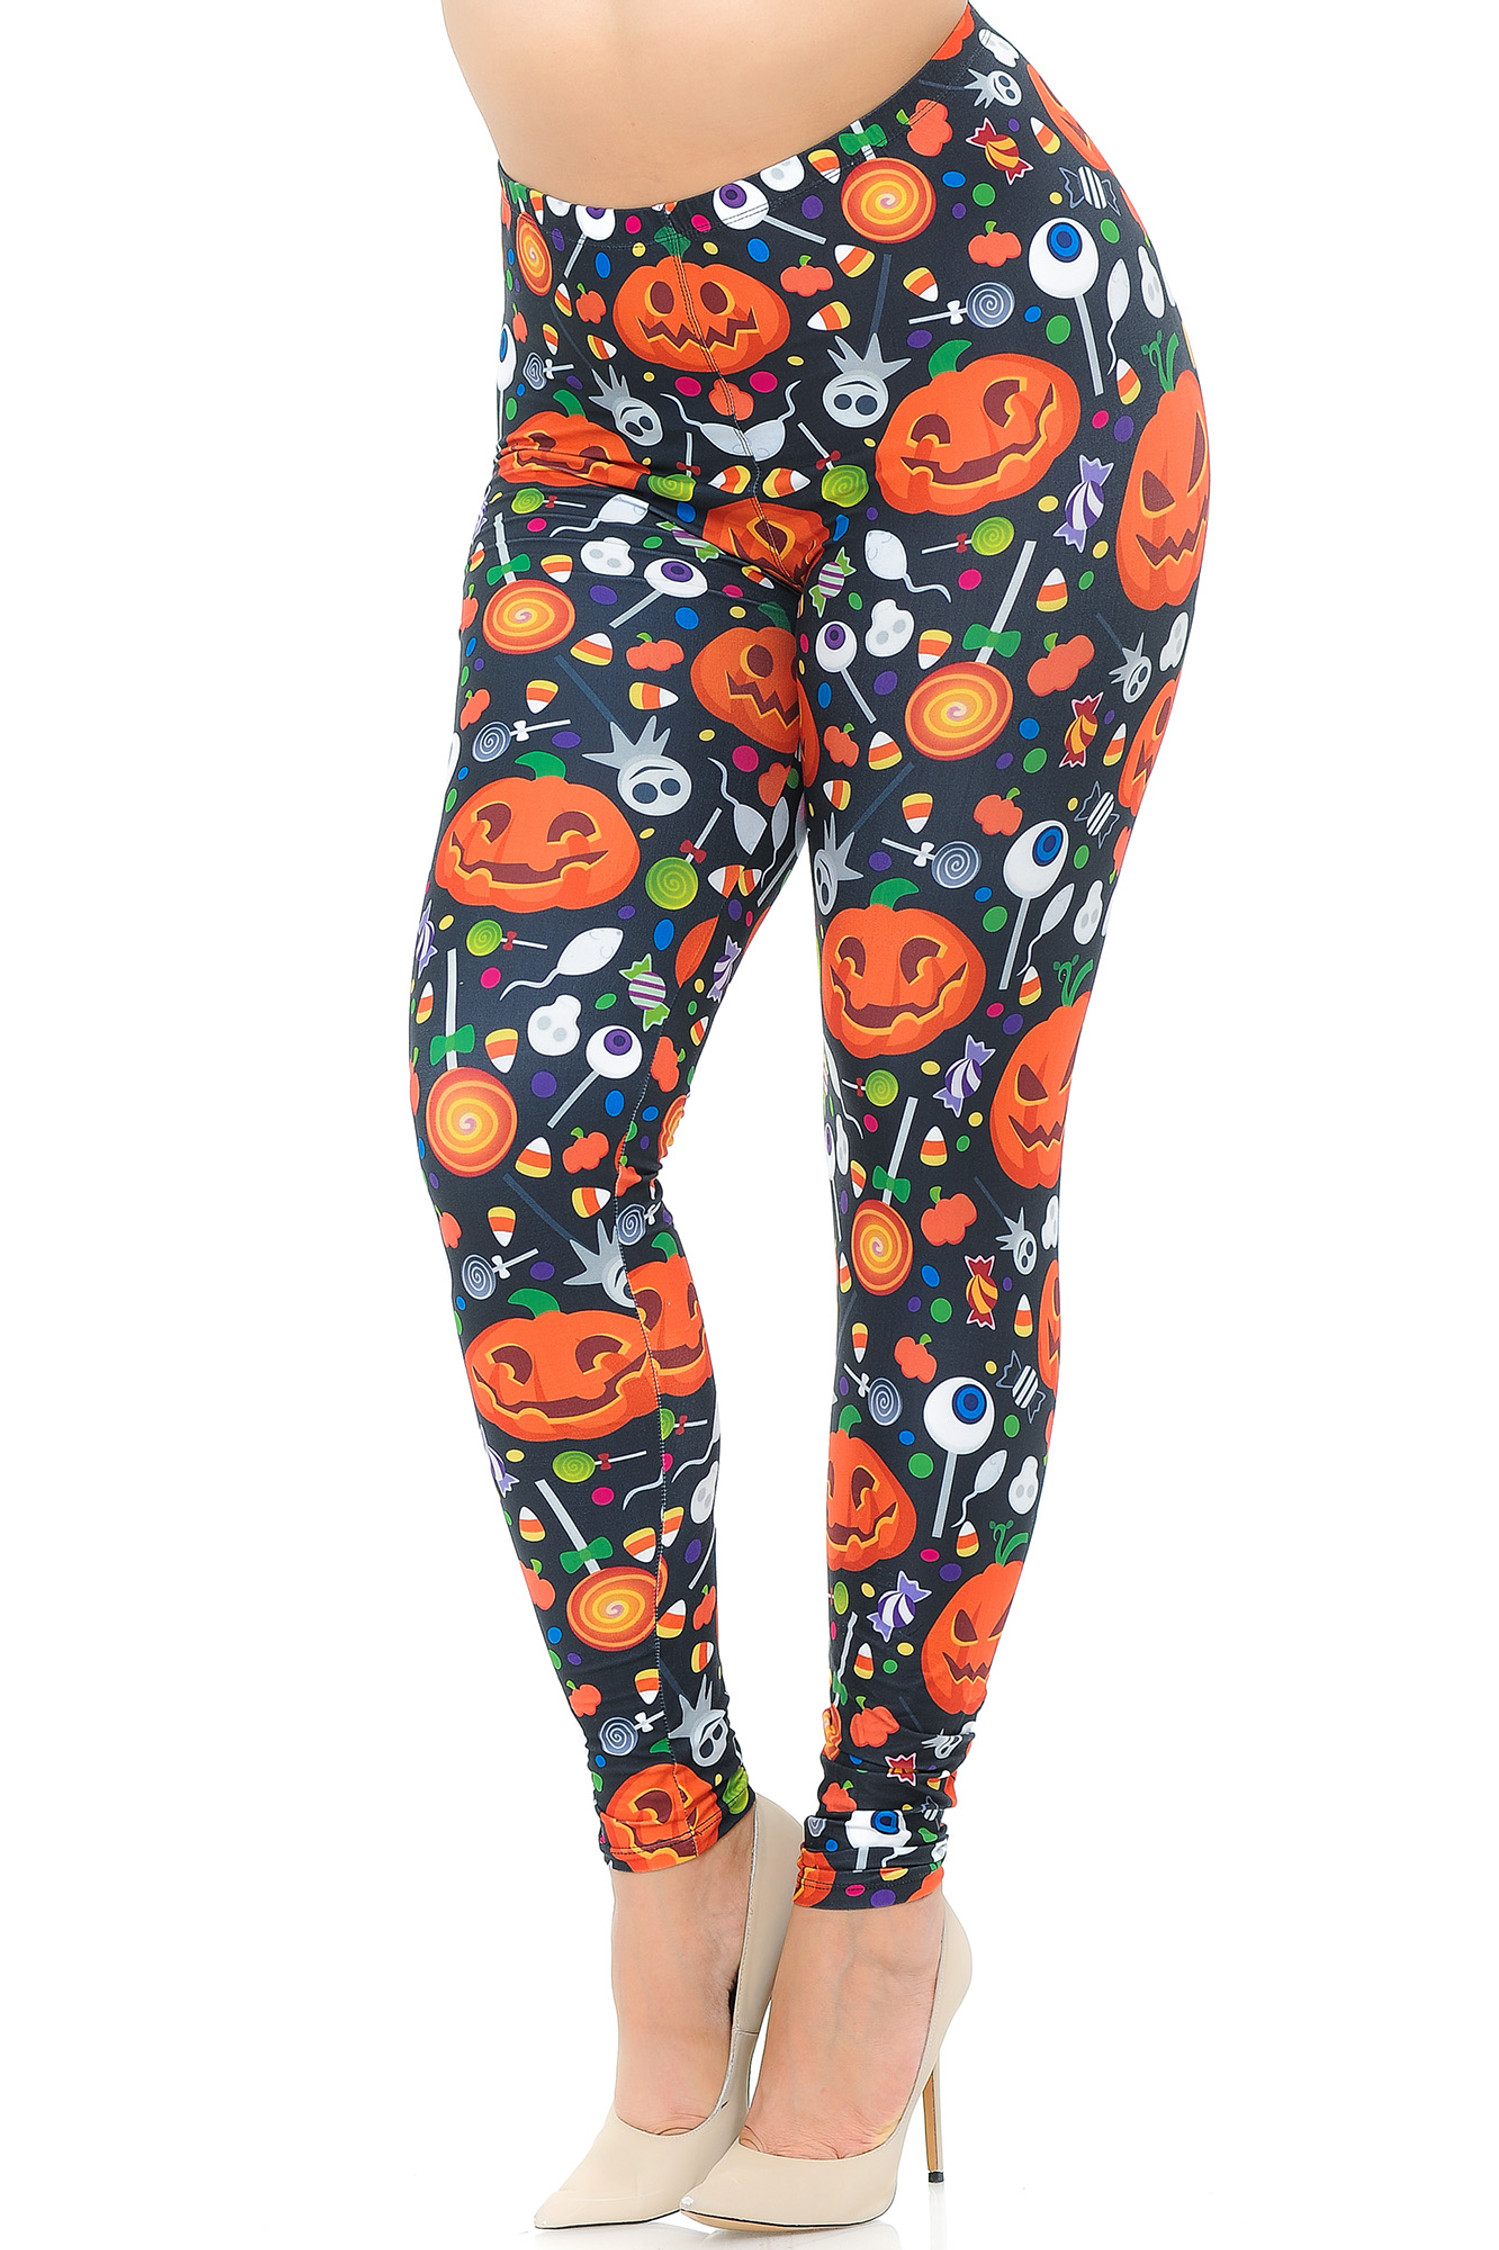 Creamy Soft Pumpkins and Halloween Candy Extra Plus Size Leggings - 3X-5X - USA Fashion™